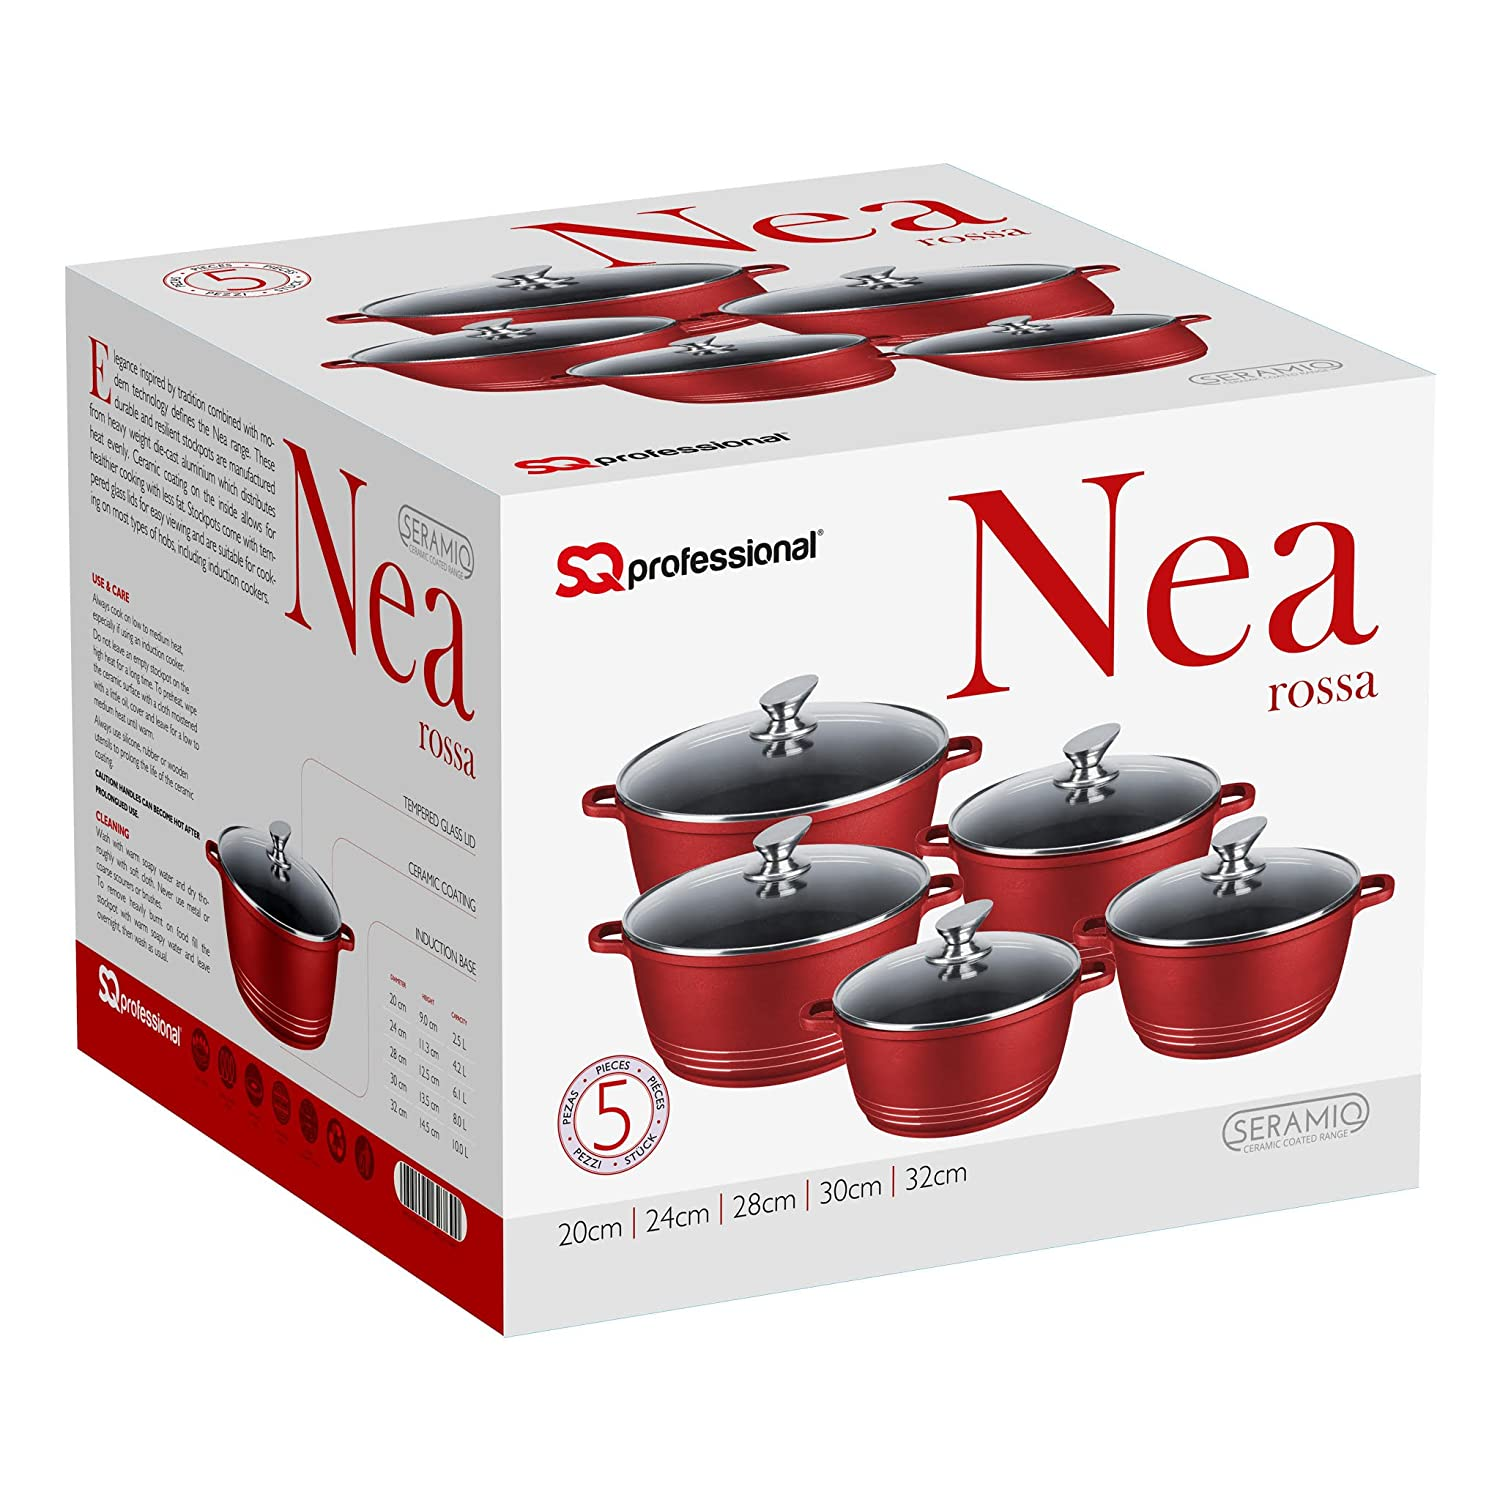 5 Piece Durable Diecast Non Stick, Ceramic Coated Cooking/Casserole Pot Set (Red)